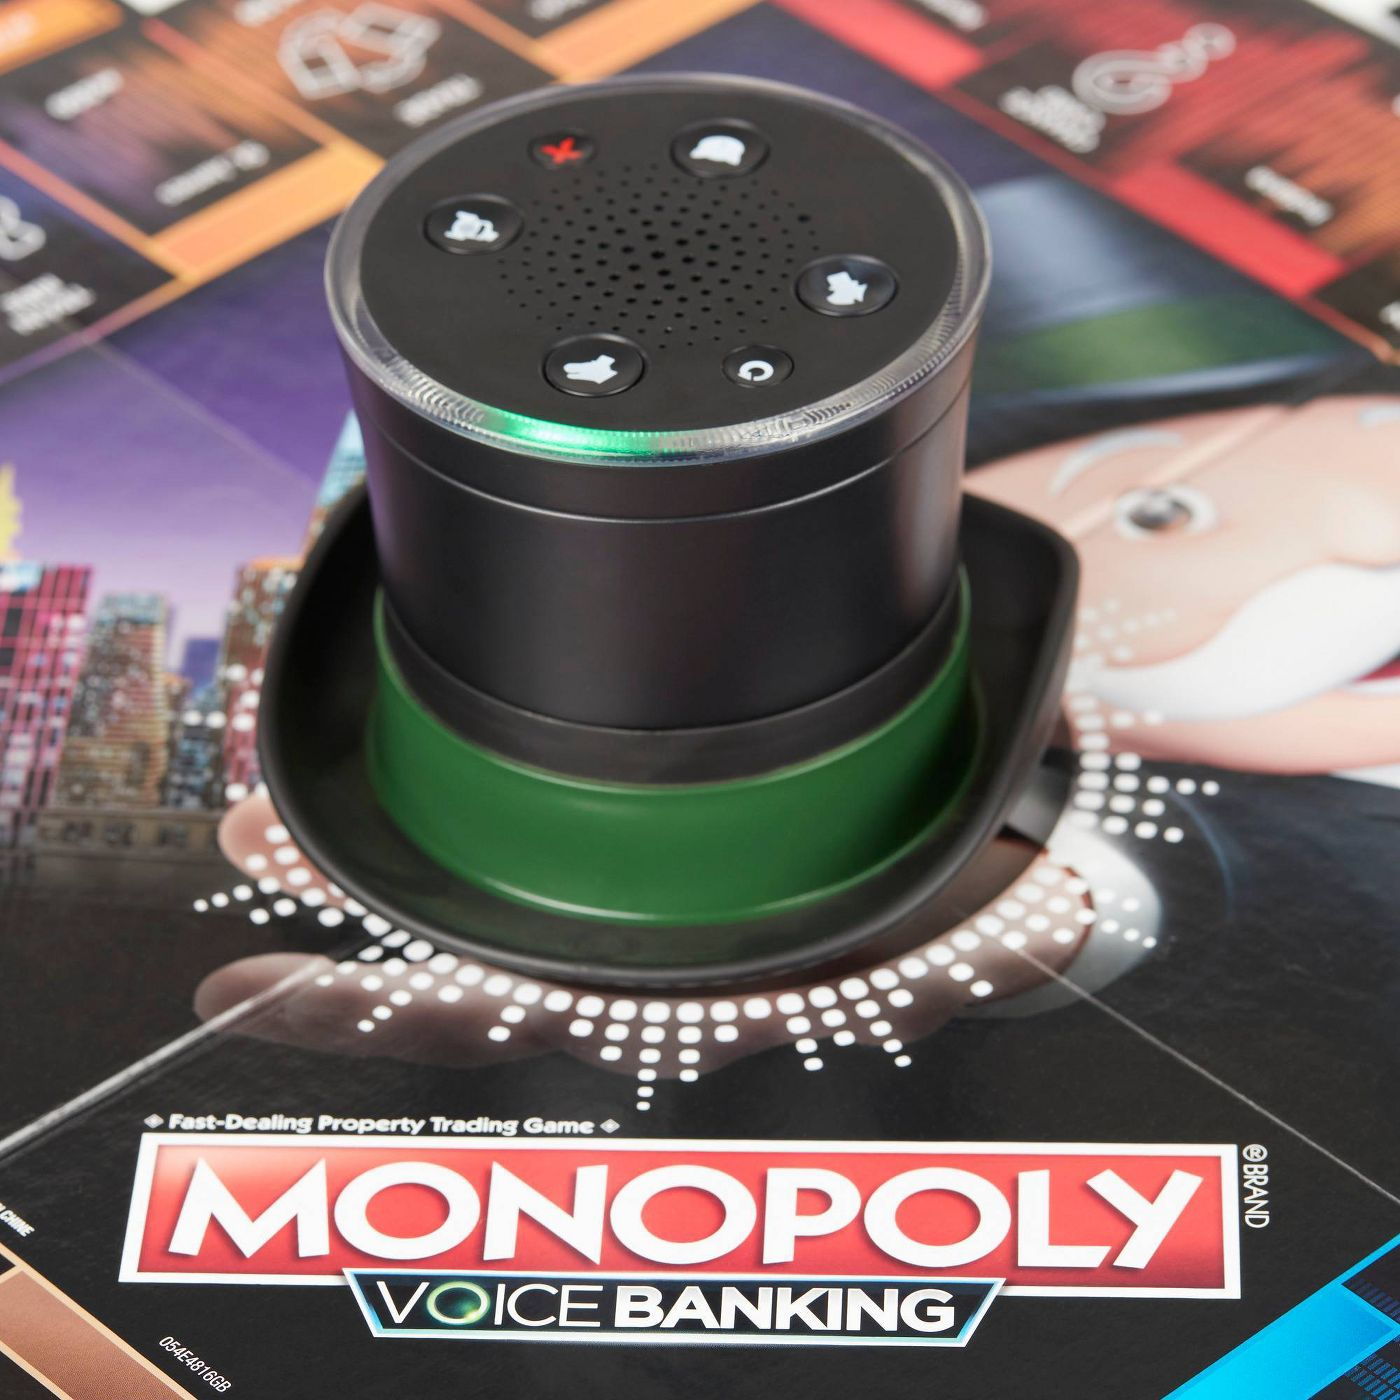 Monopoly Electronic Voice Banking Game